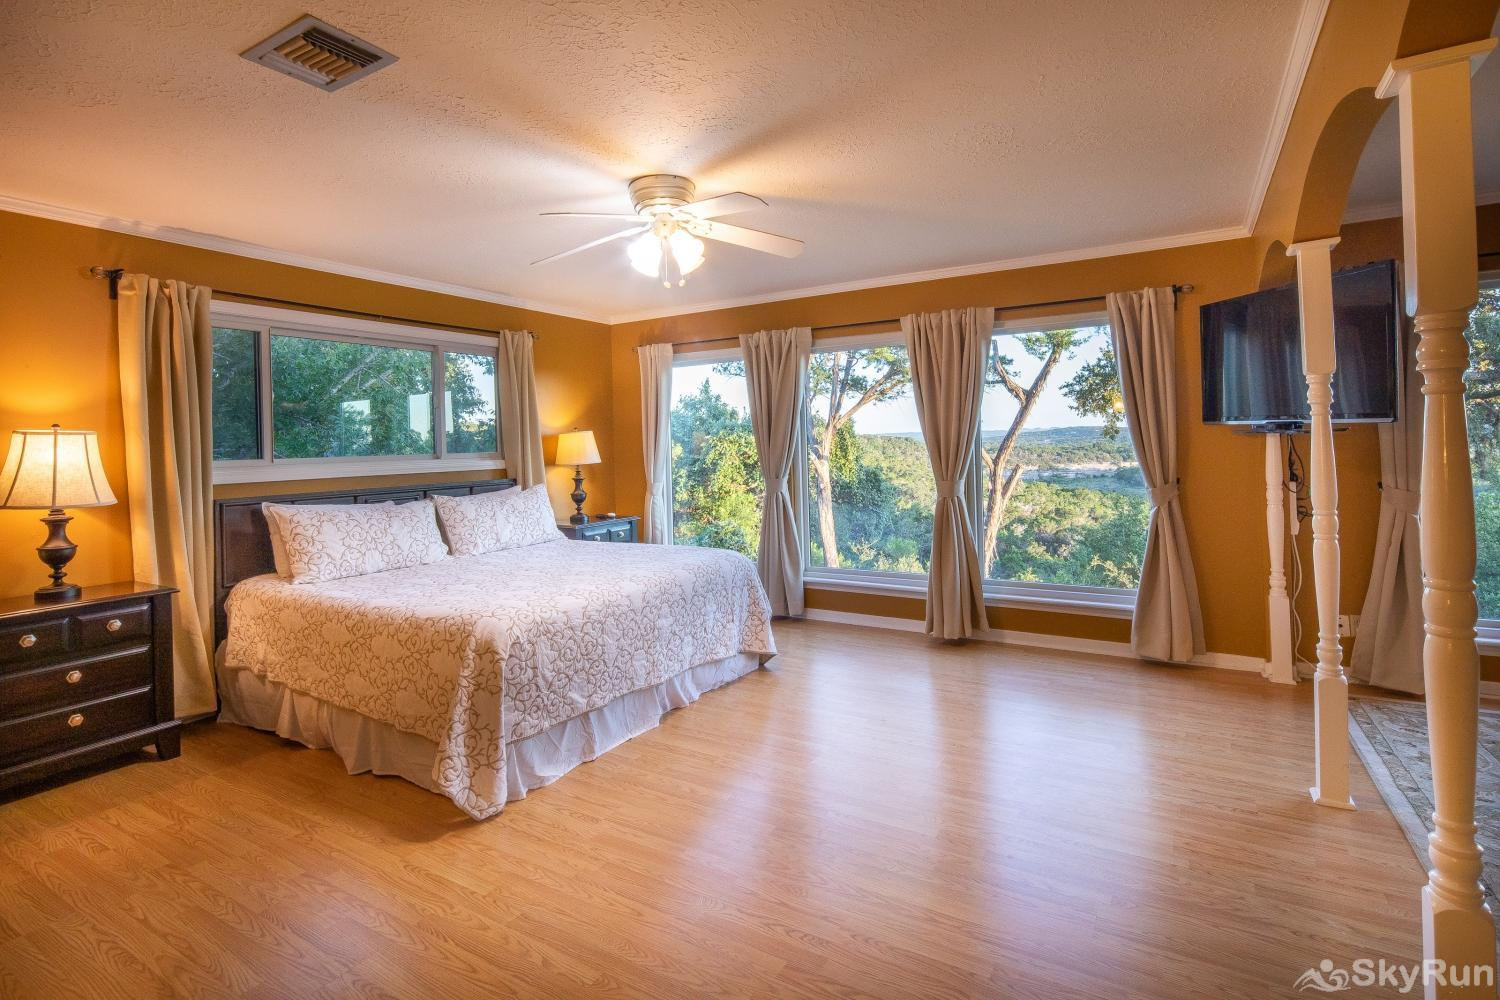 VALLEY VIEW Master bedroom with king bed and TV